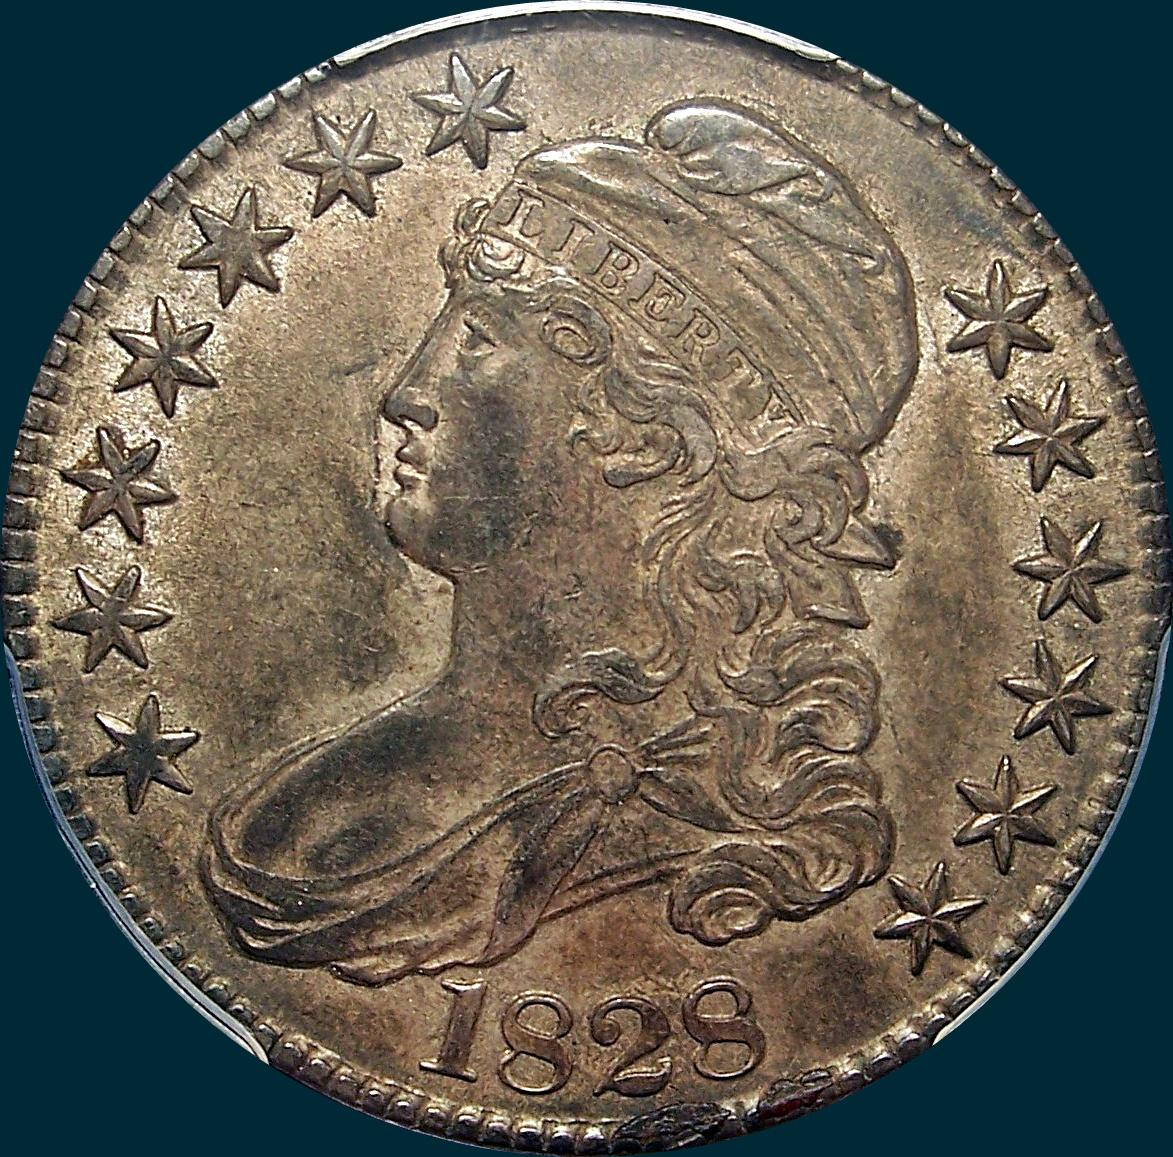 1828, O-107, Curl Base 2, Knob, Capped Bust, Half Dollar